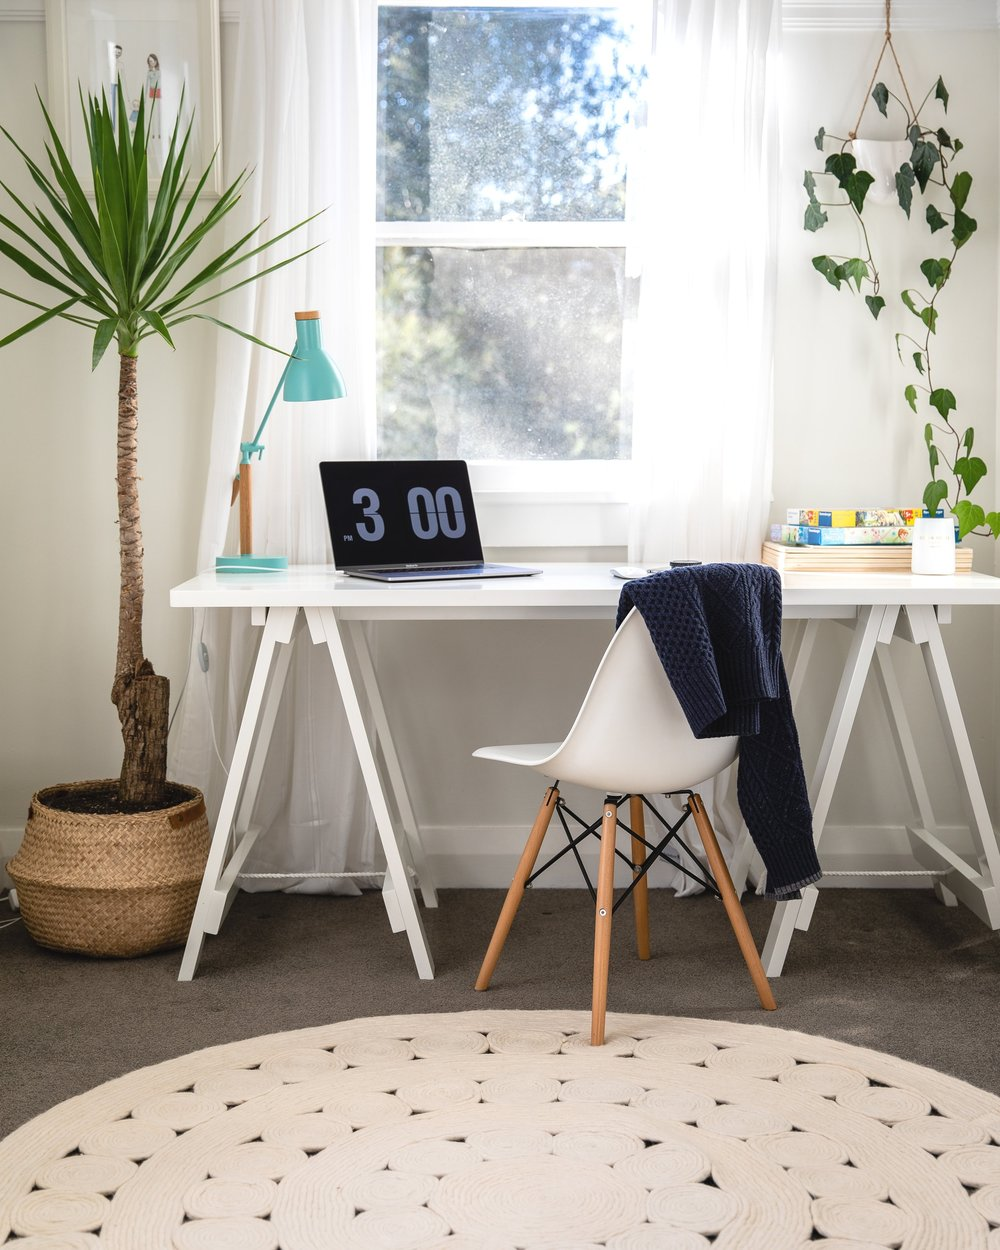 A clear working space helps you focus on what's important.